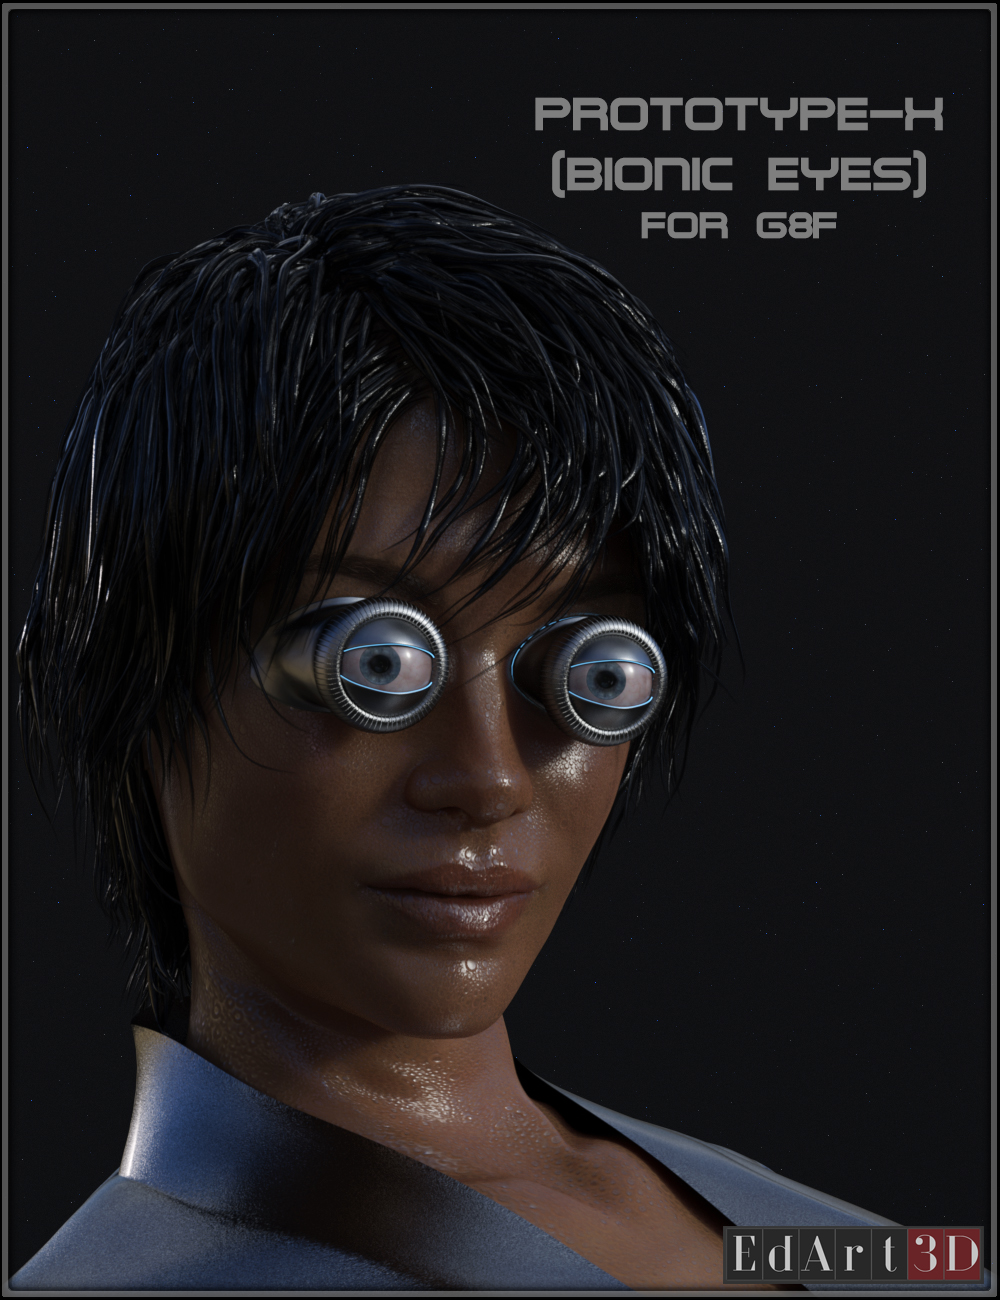 PROTOTYPE-X :-: Bionic Eyes for G8F